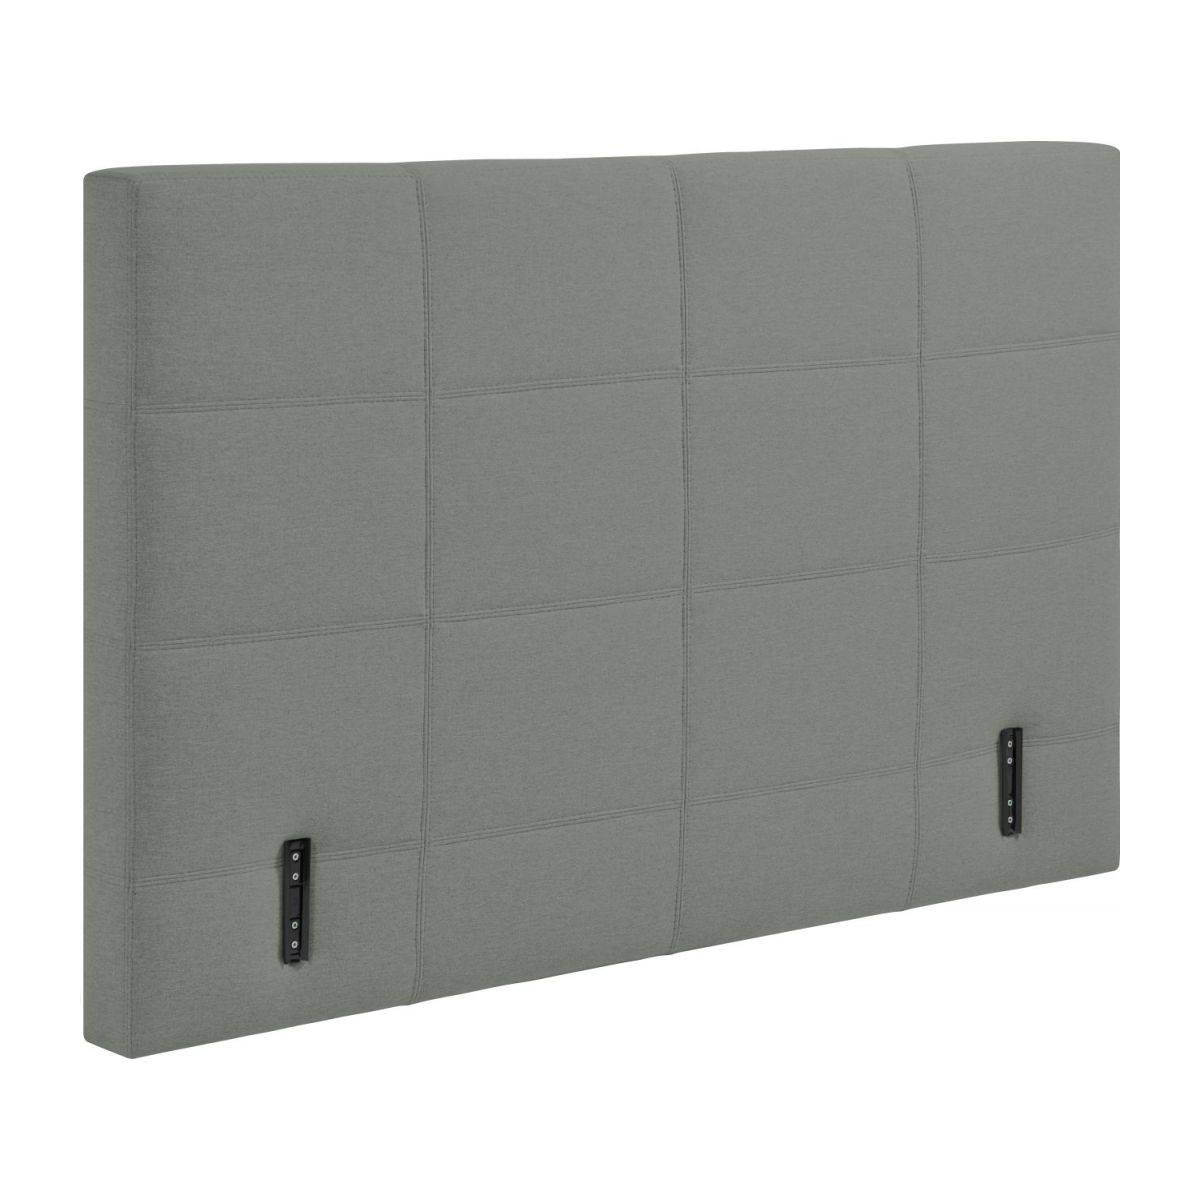 Headboard for 180cm box spring in fabric, mouse-grey n°2